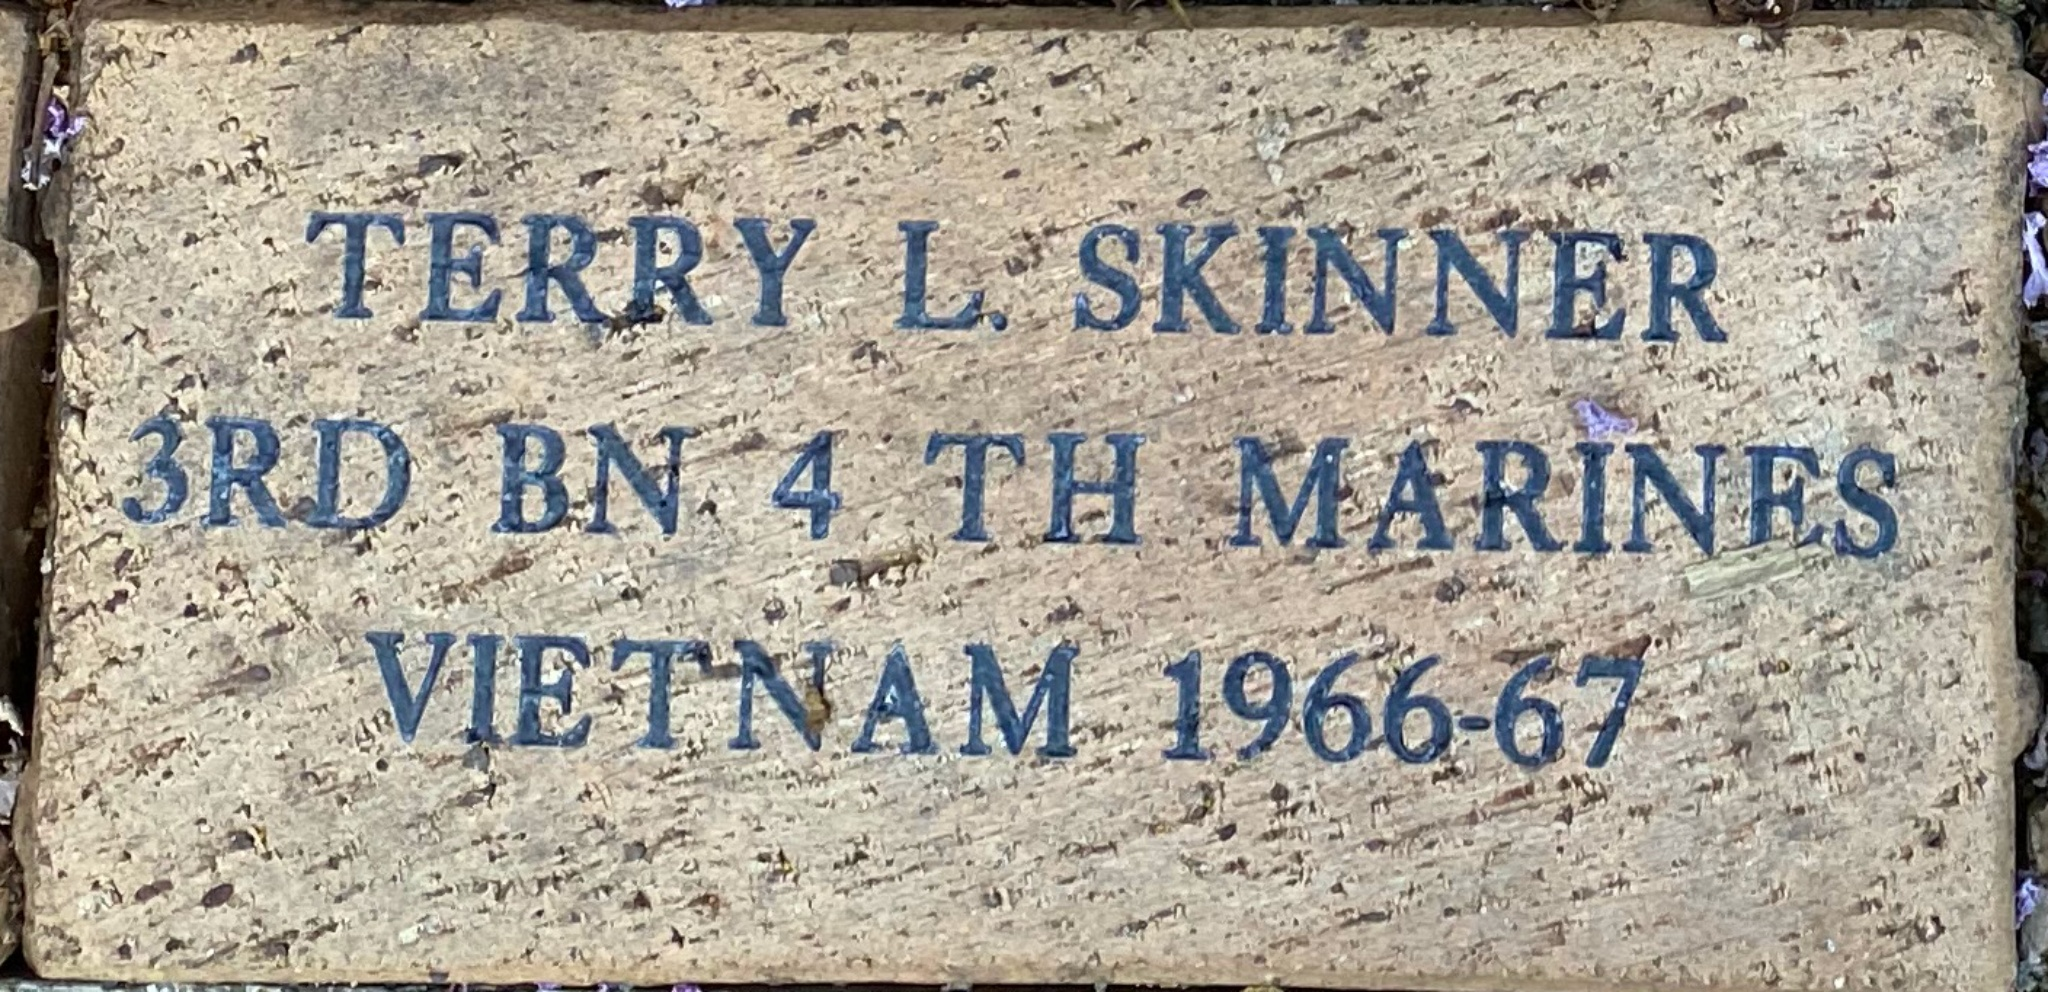 TERRY L. SKINNER 3RD BN 4 TH MARINES VIETNAM 1966-67